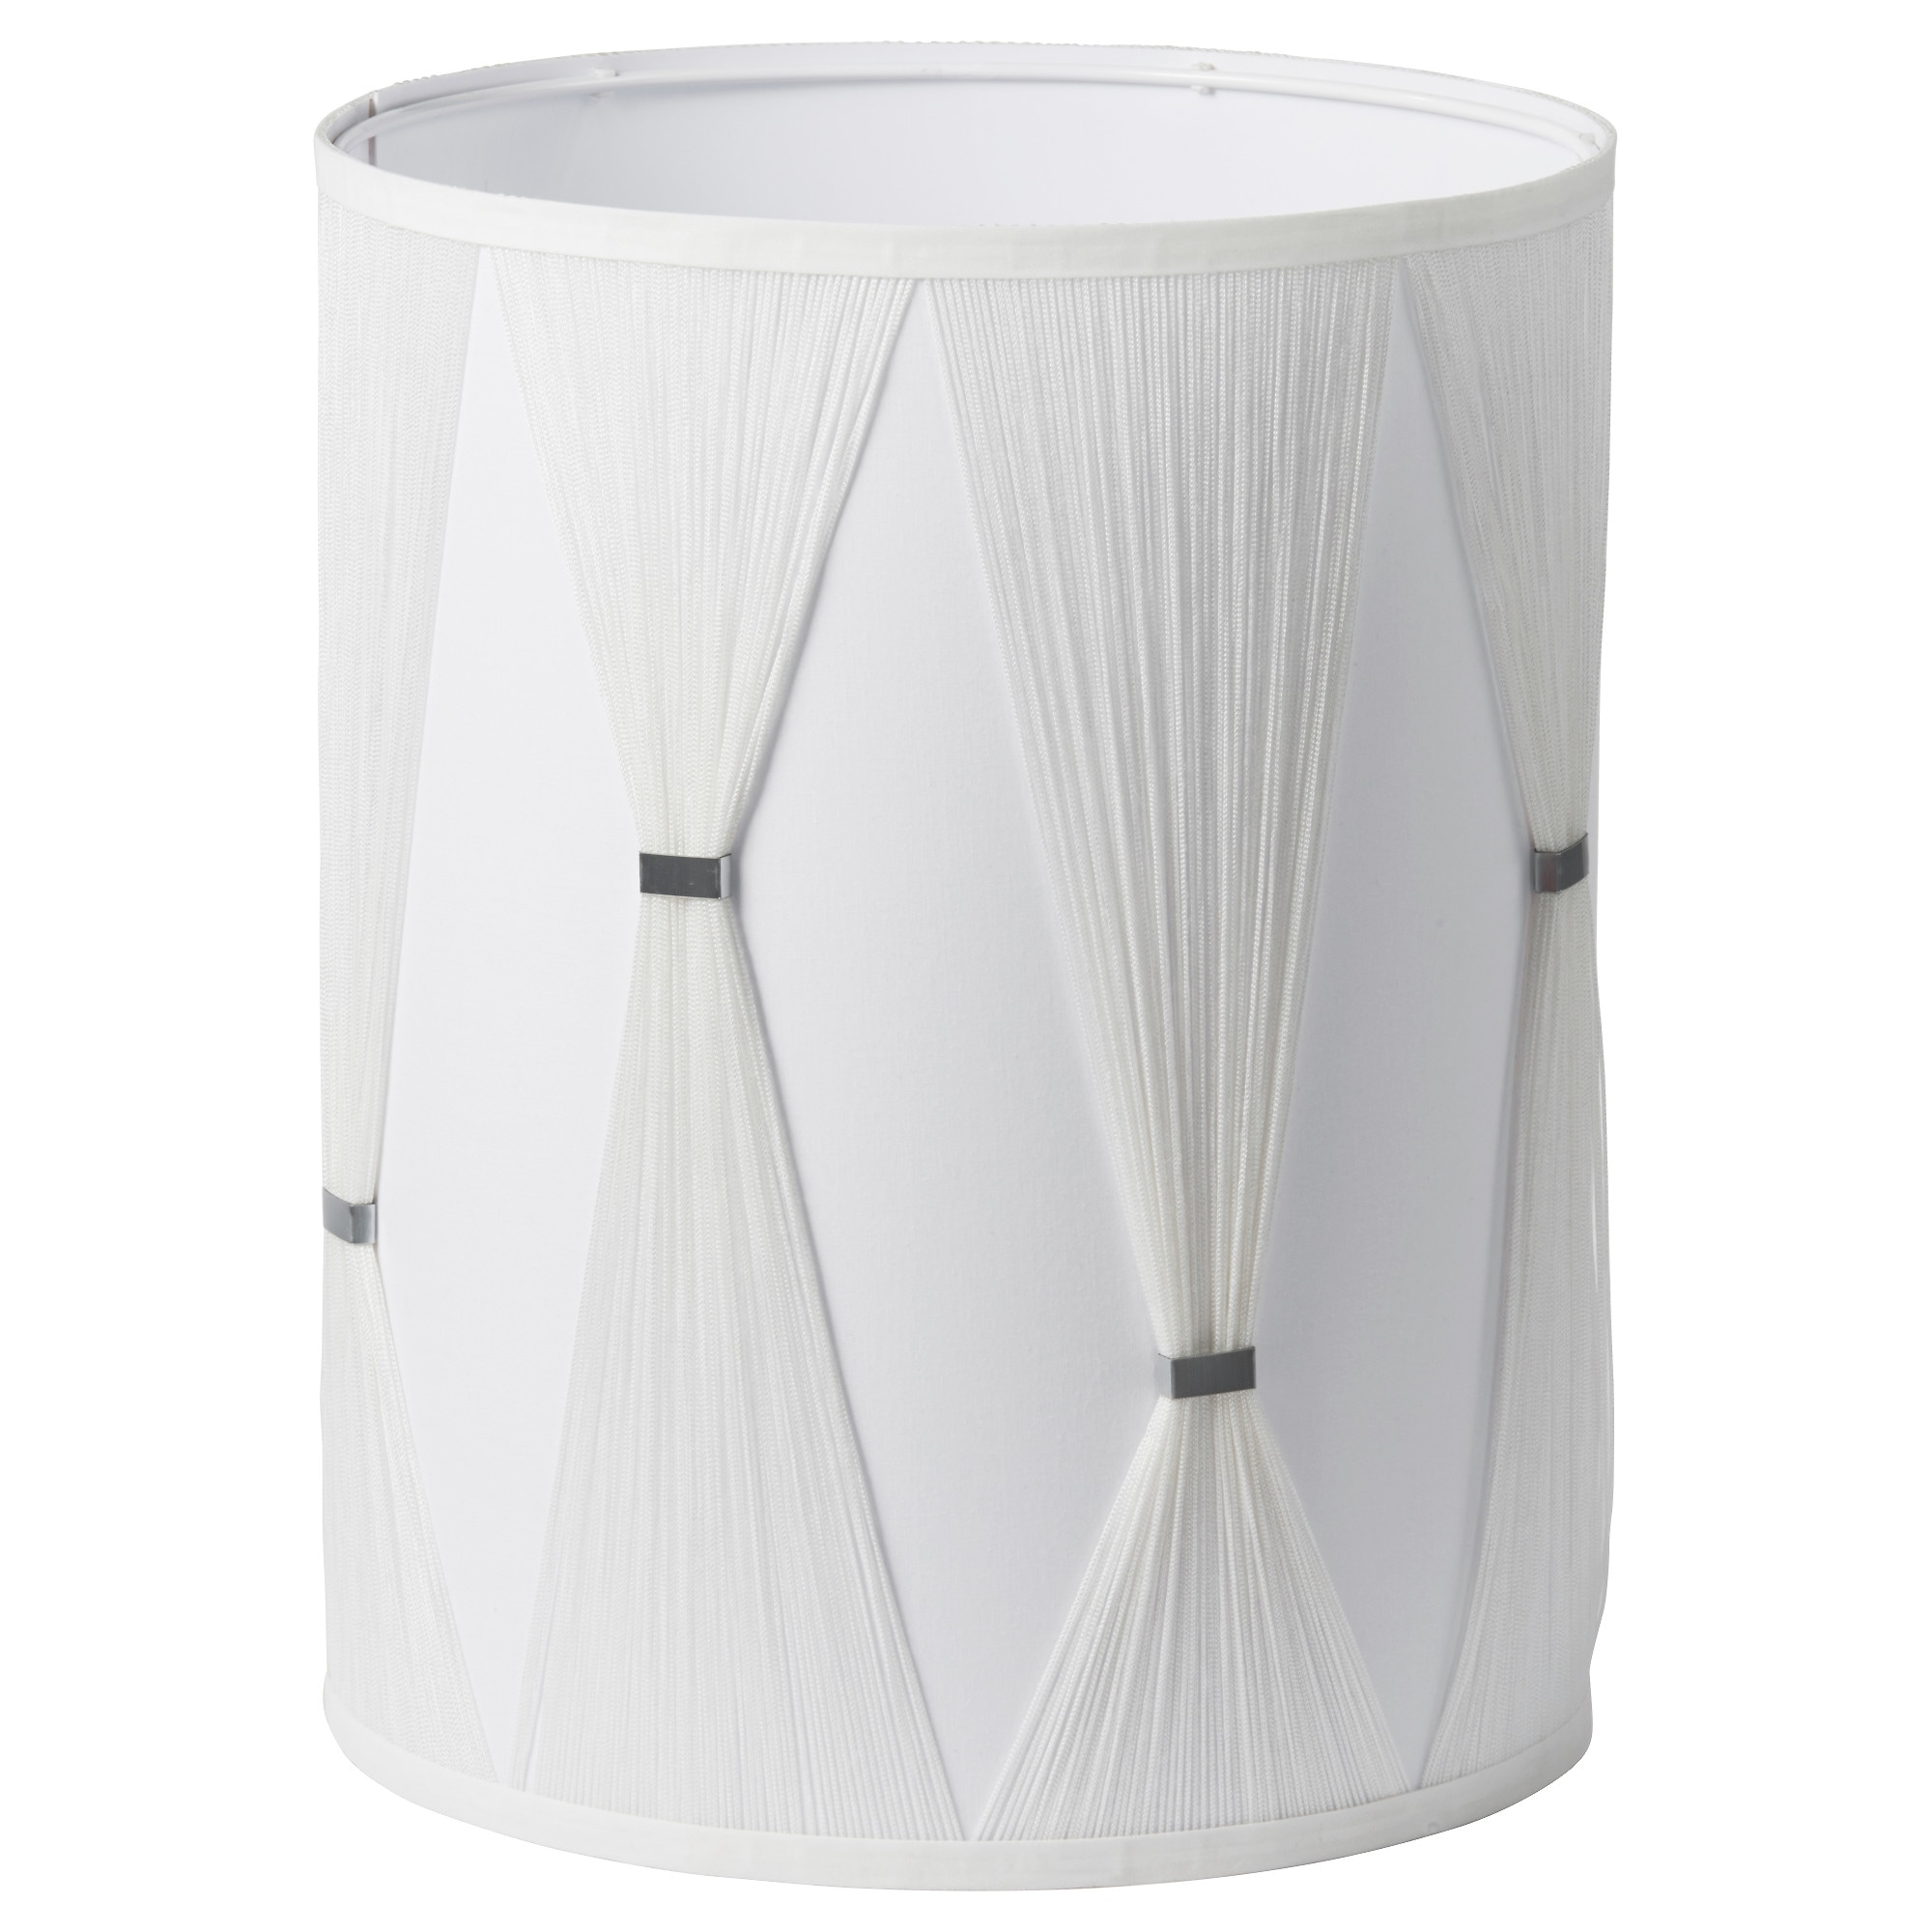 RÄMMEN lamp shade, white Height: 15